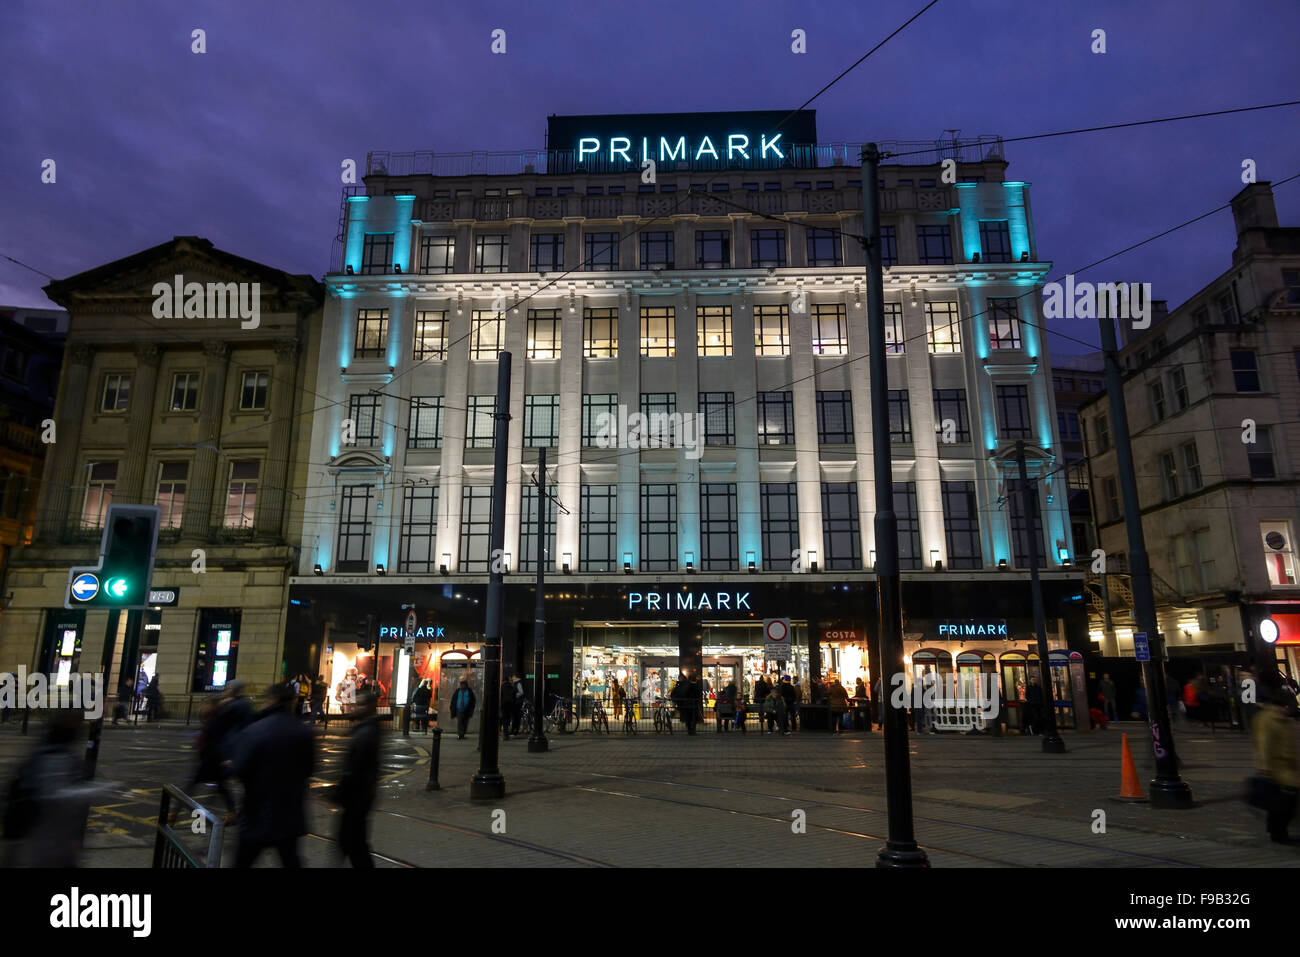 Primark in Piccadilly, Manchester at night. - Stock Image